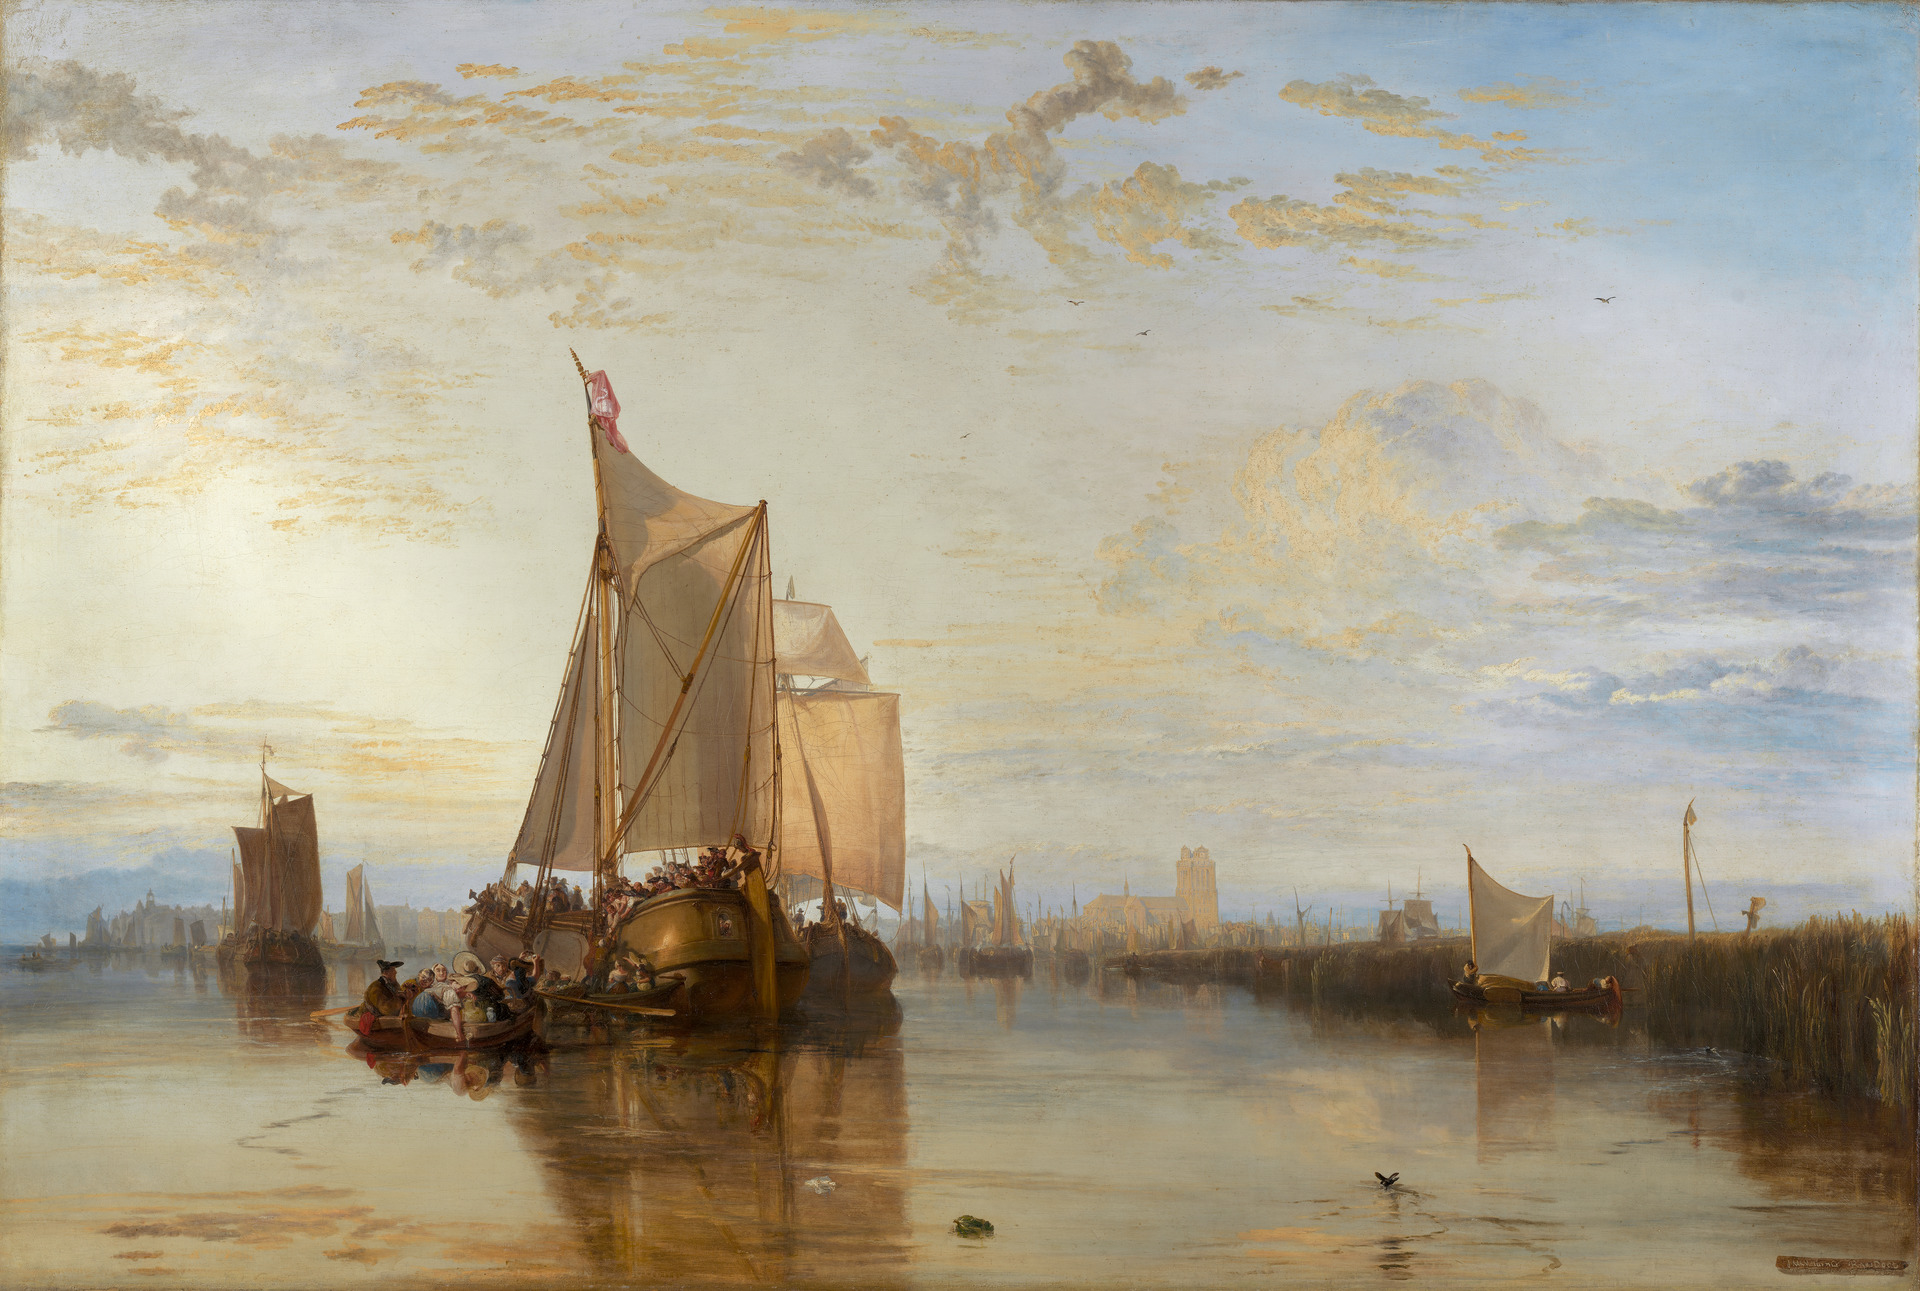 Joseph Mallord William Turner, 1775–1851, British,  Dort or Dordrecht: The Dort packet-boat from Rotterdam becalmed , 1818, Oil on canvas, Yale Center for British Art, Paul Mellon Collection.